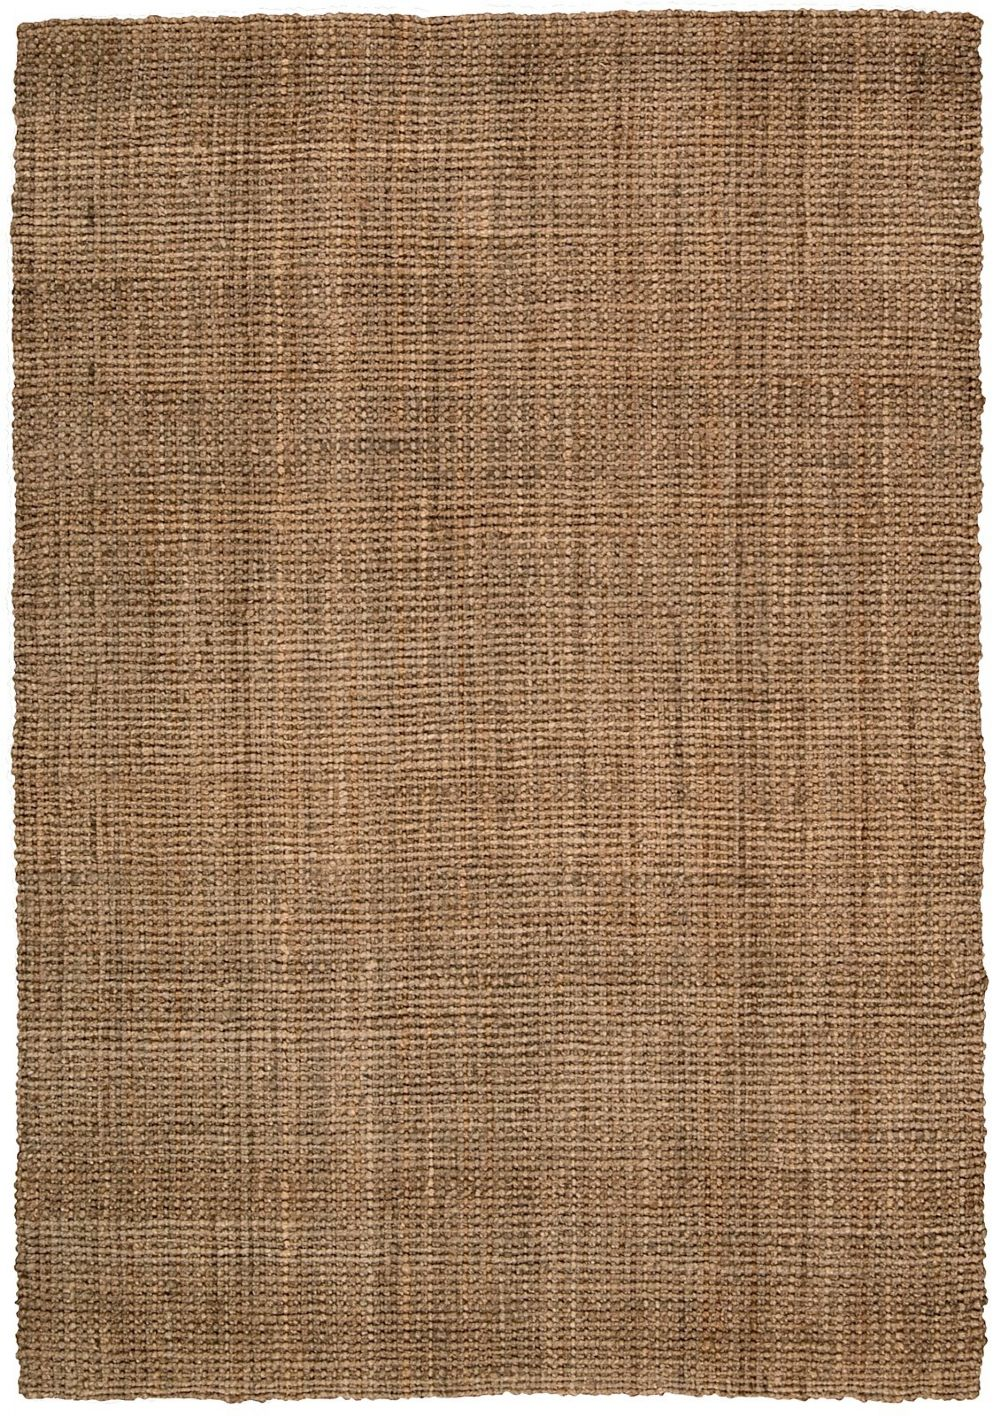 calvin klein mangrove contemporary area rug collection